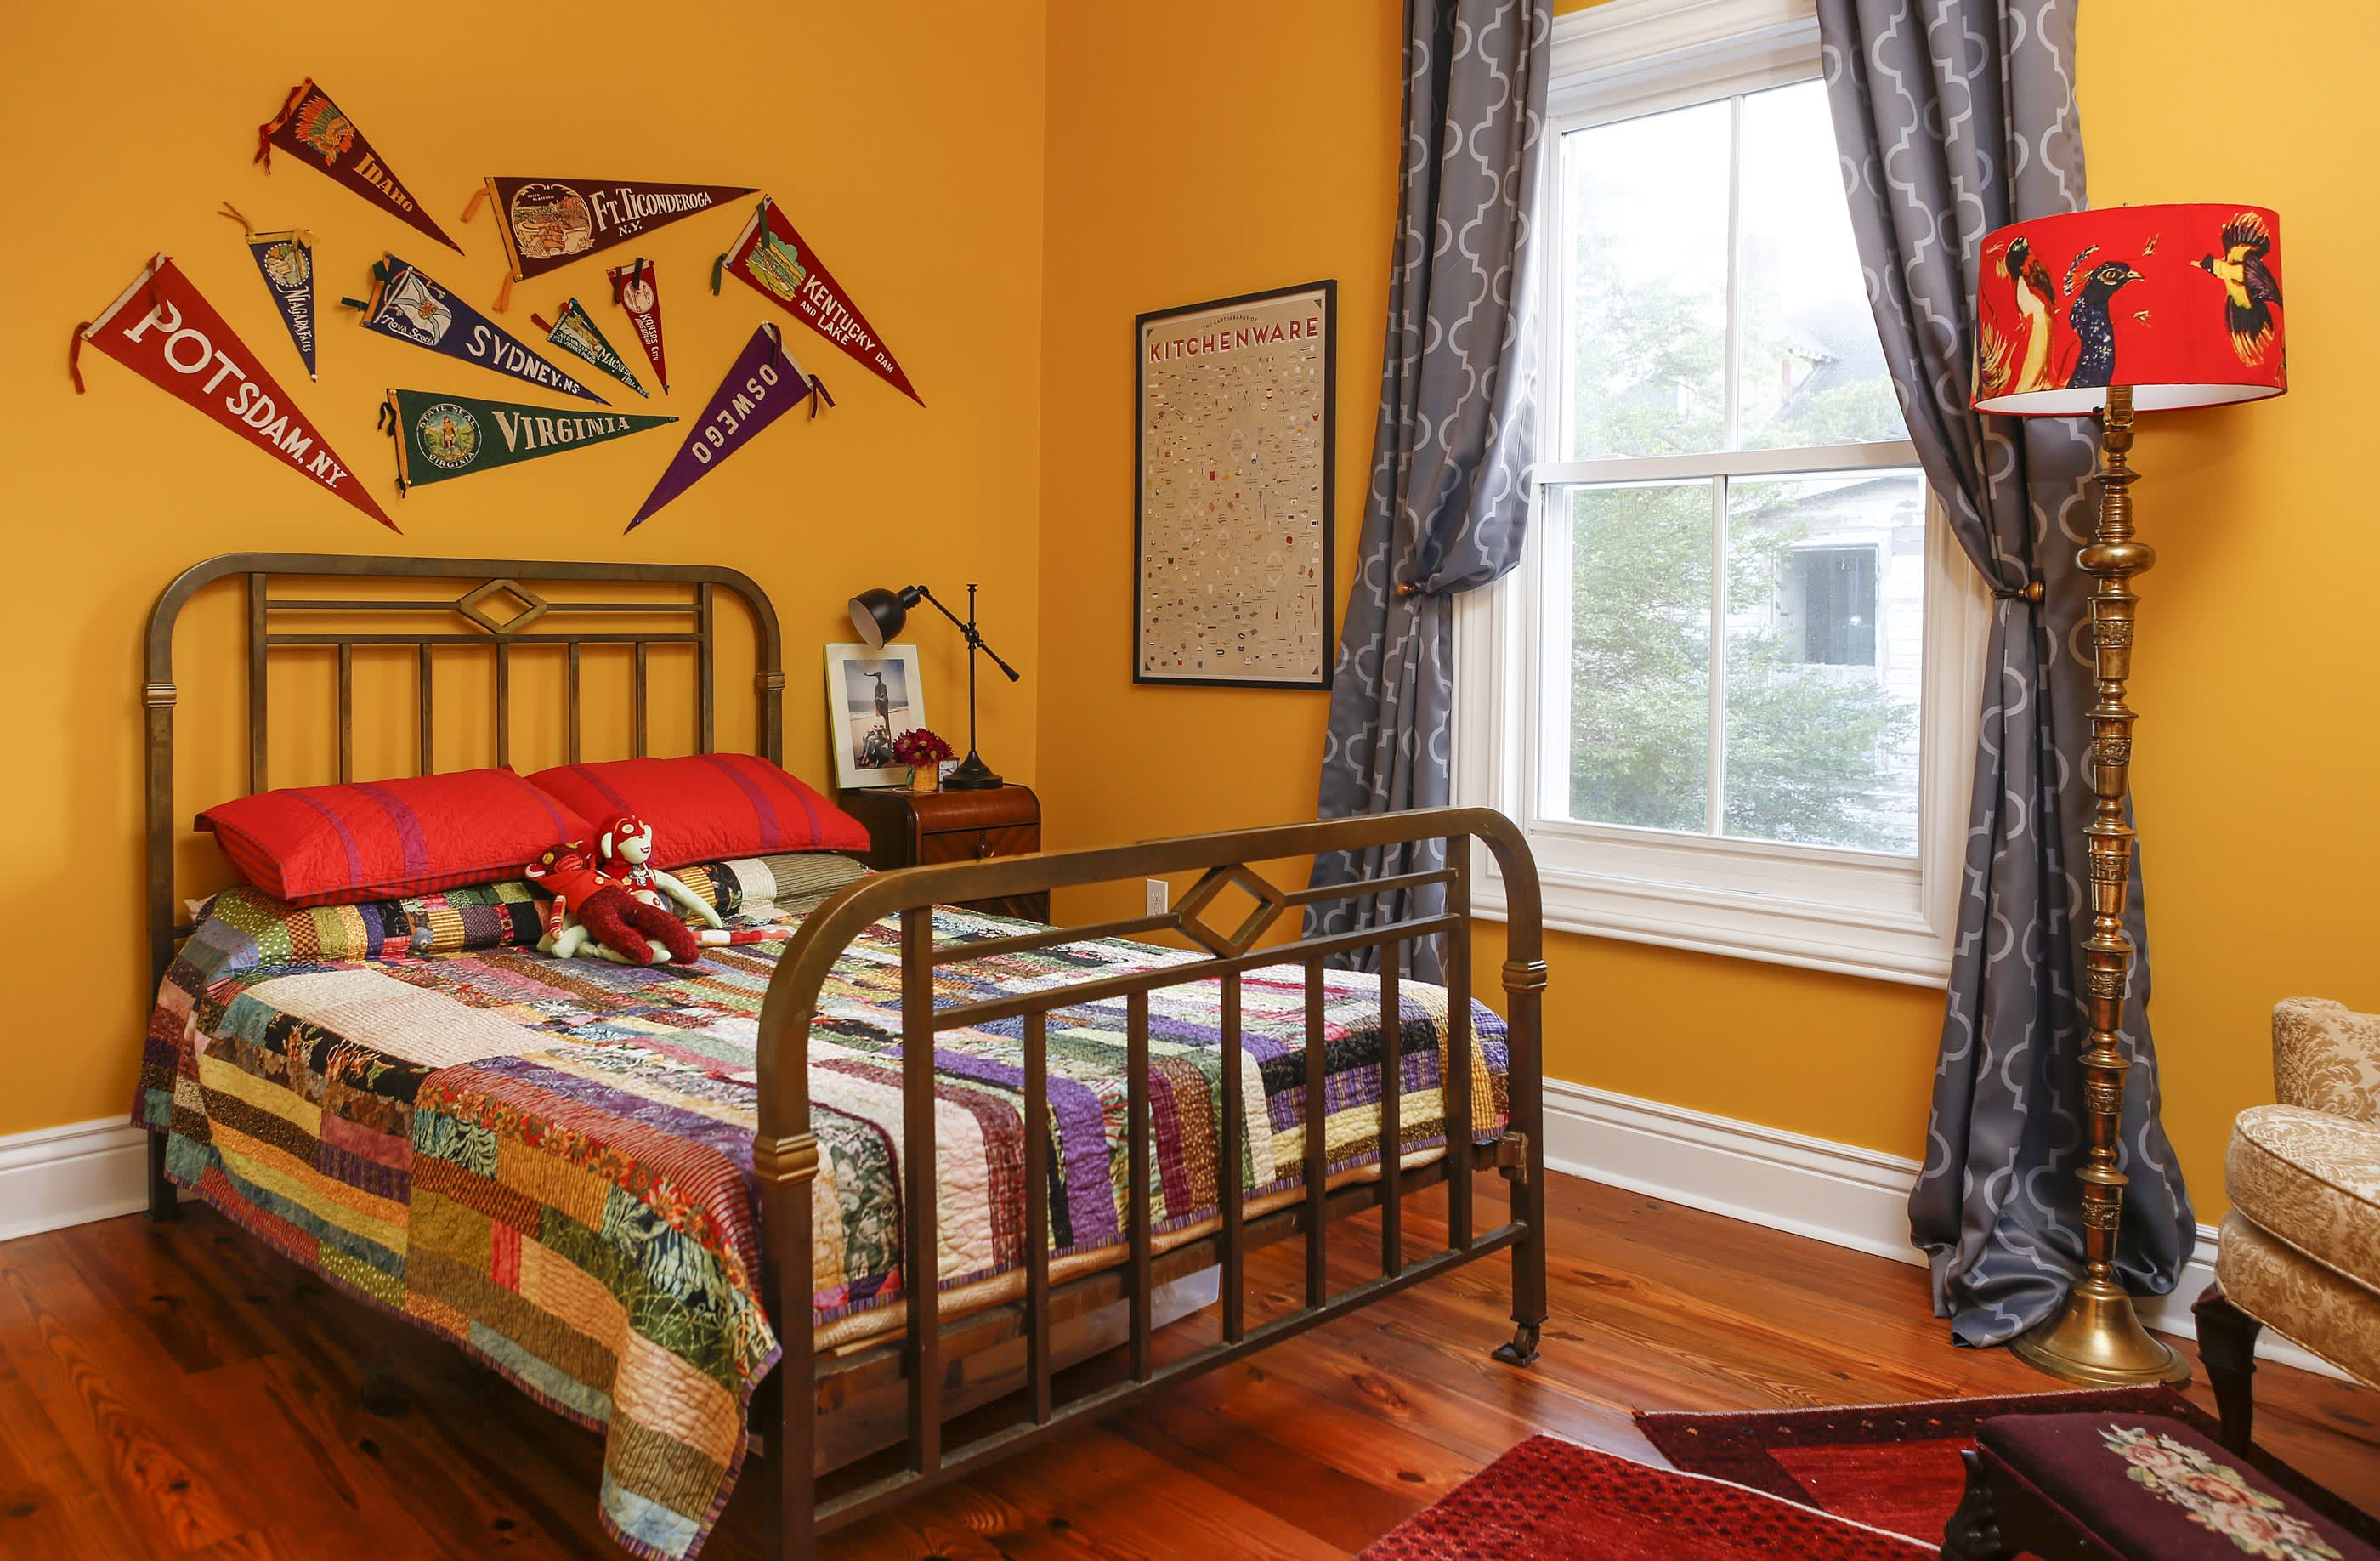 House Tour: A Bold & Colorful Uptown New Orleans House ...